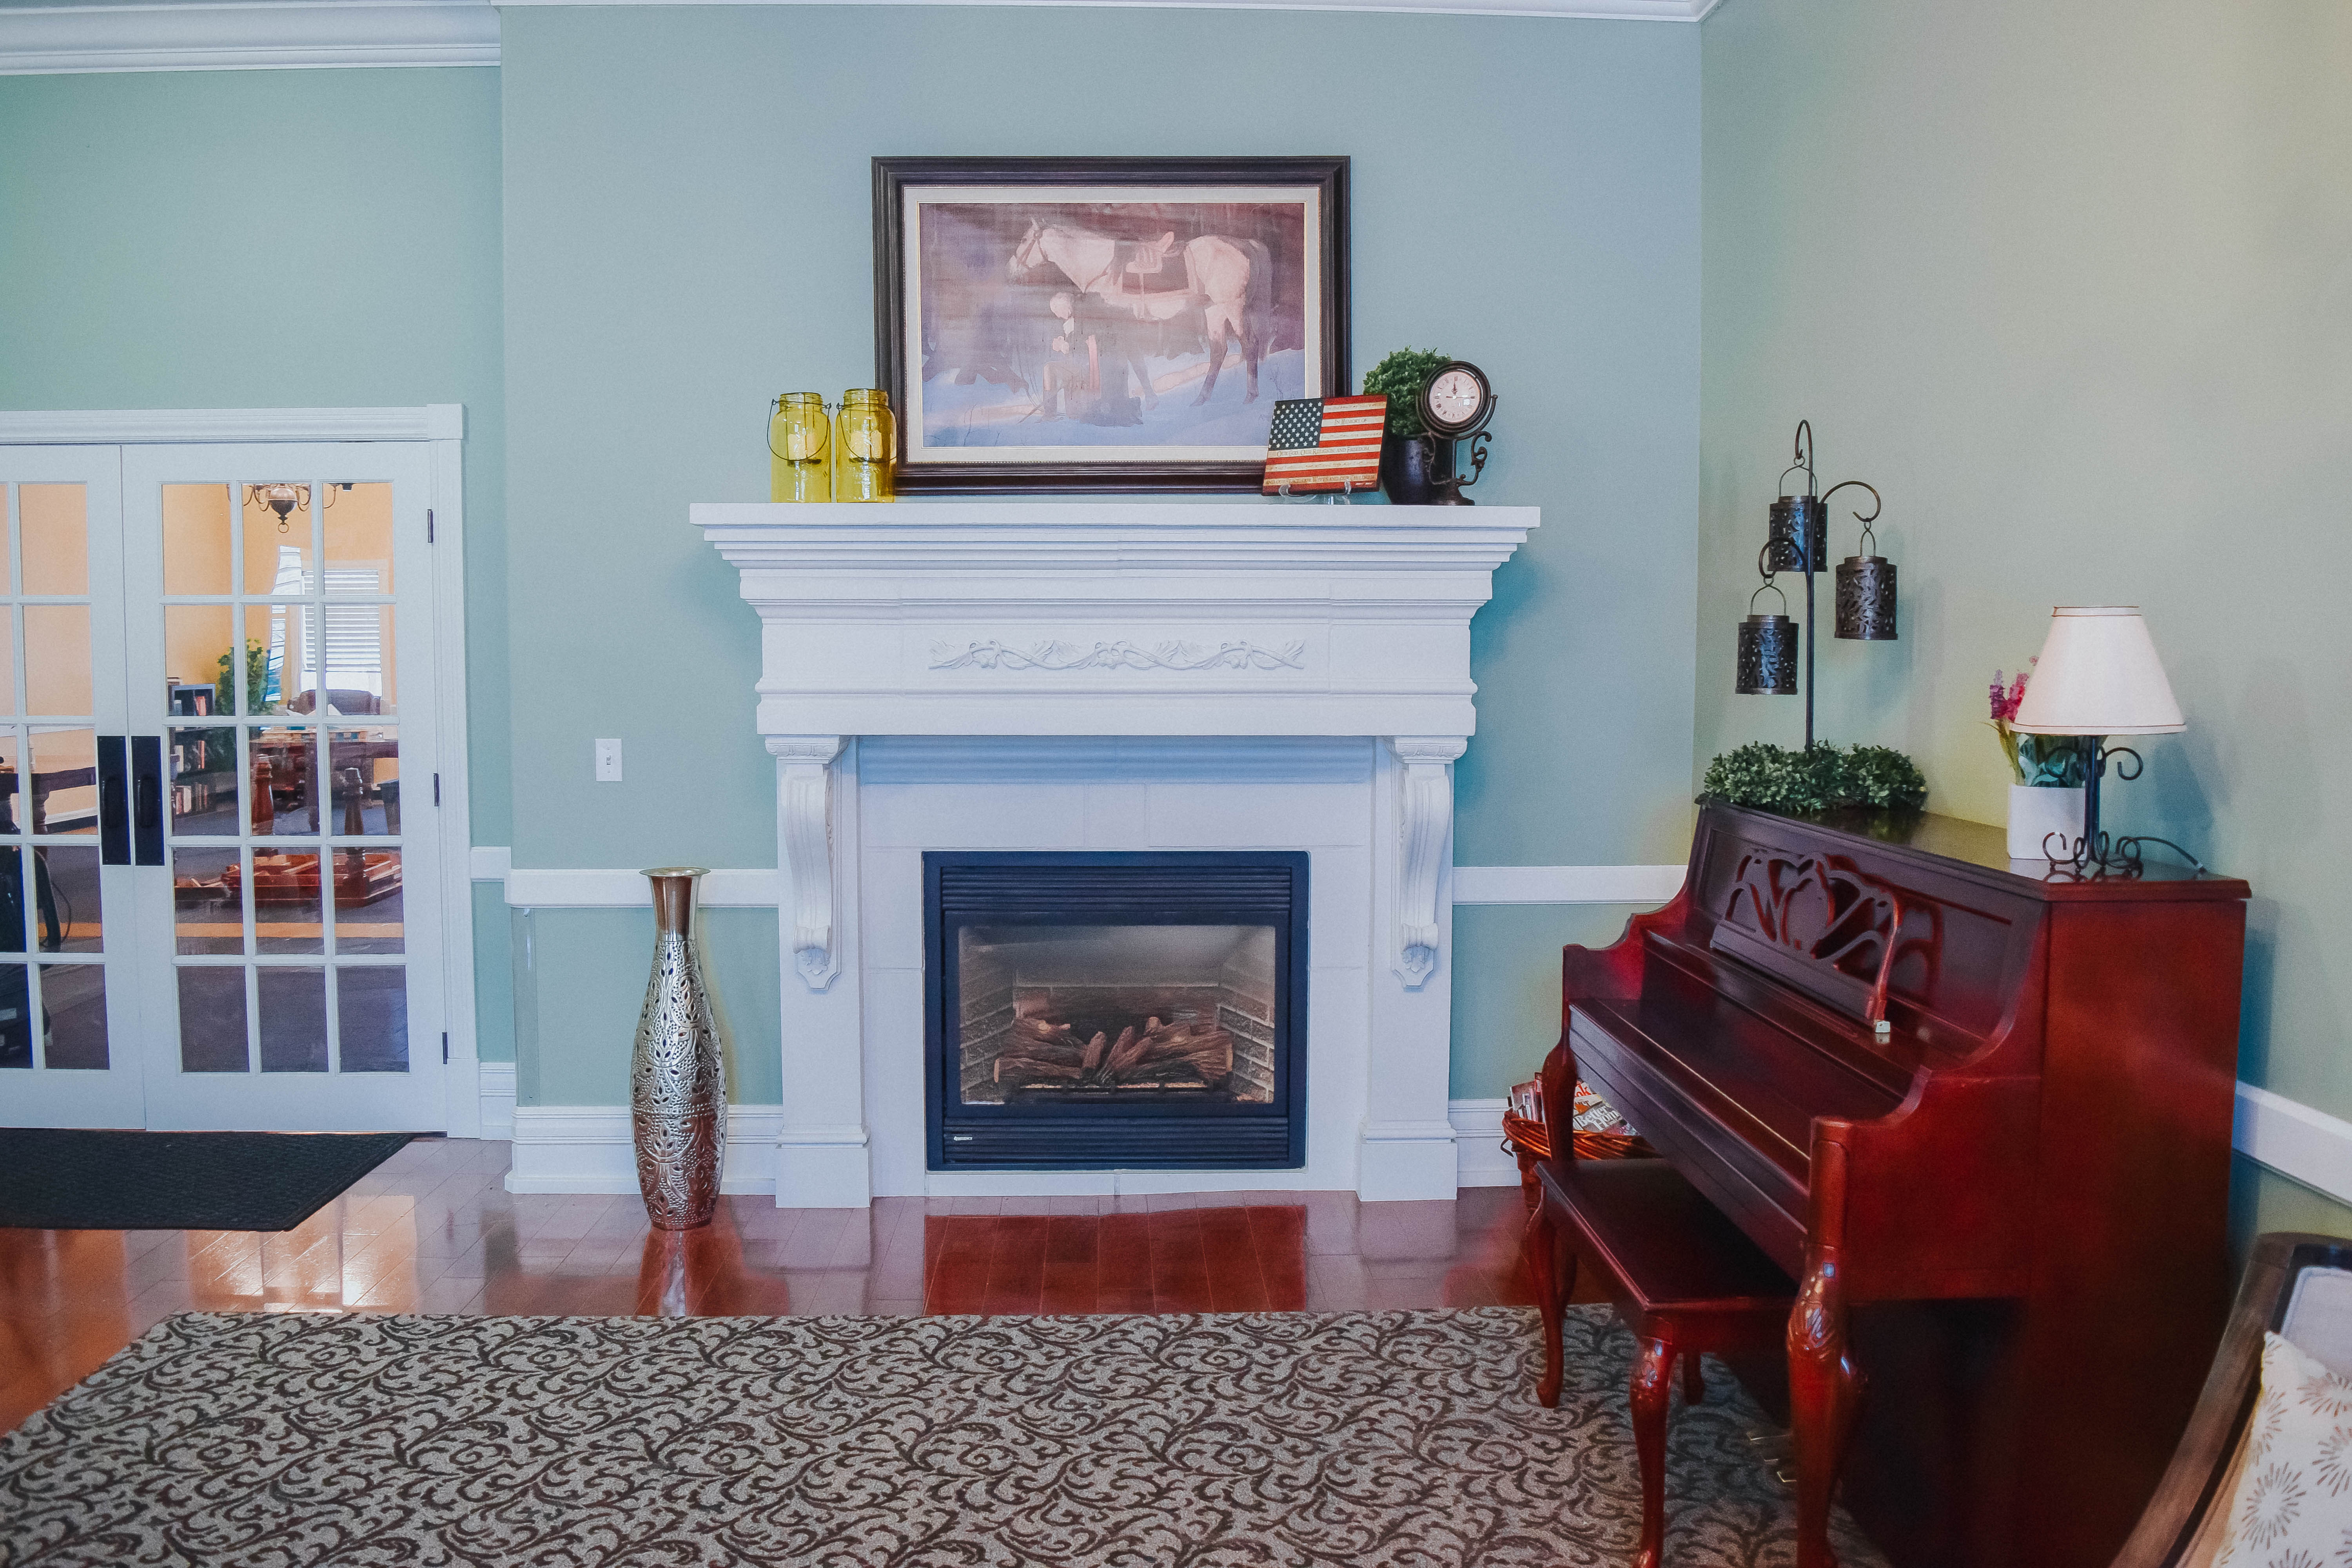 Tambree Meadows Assisted Living Fireplace